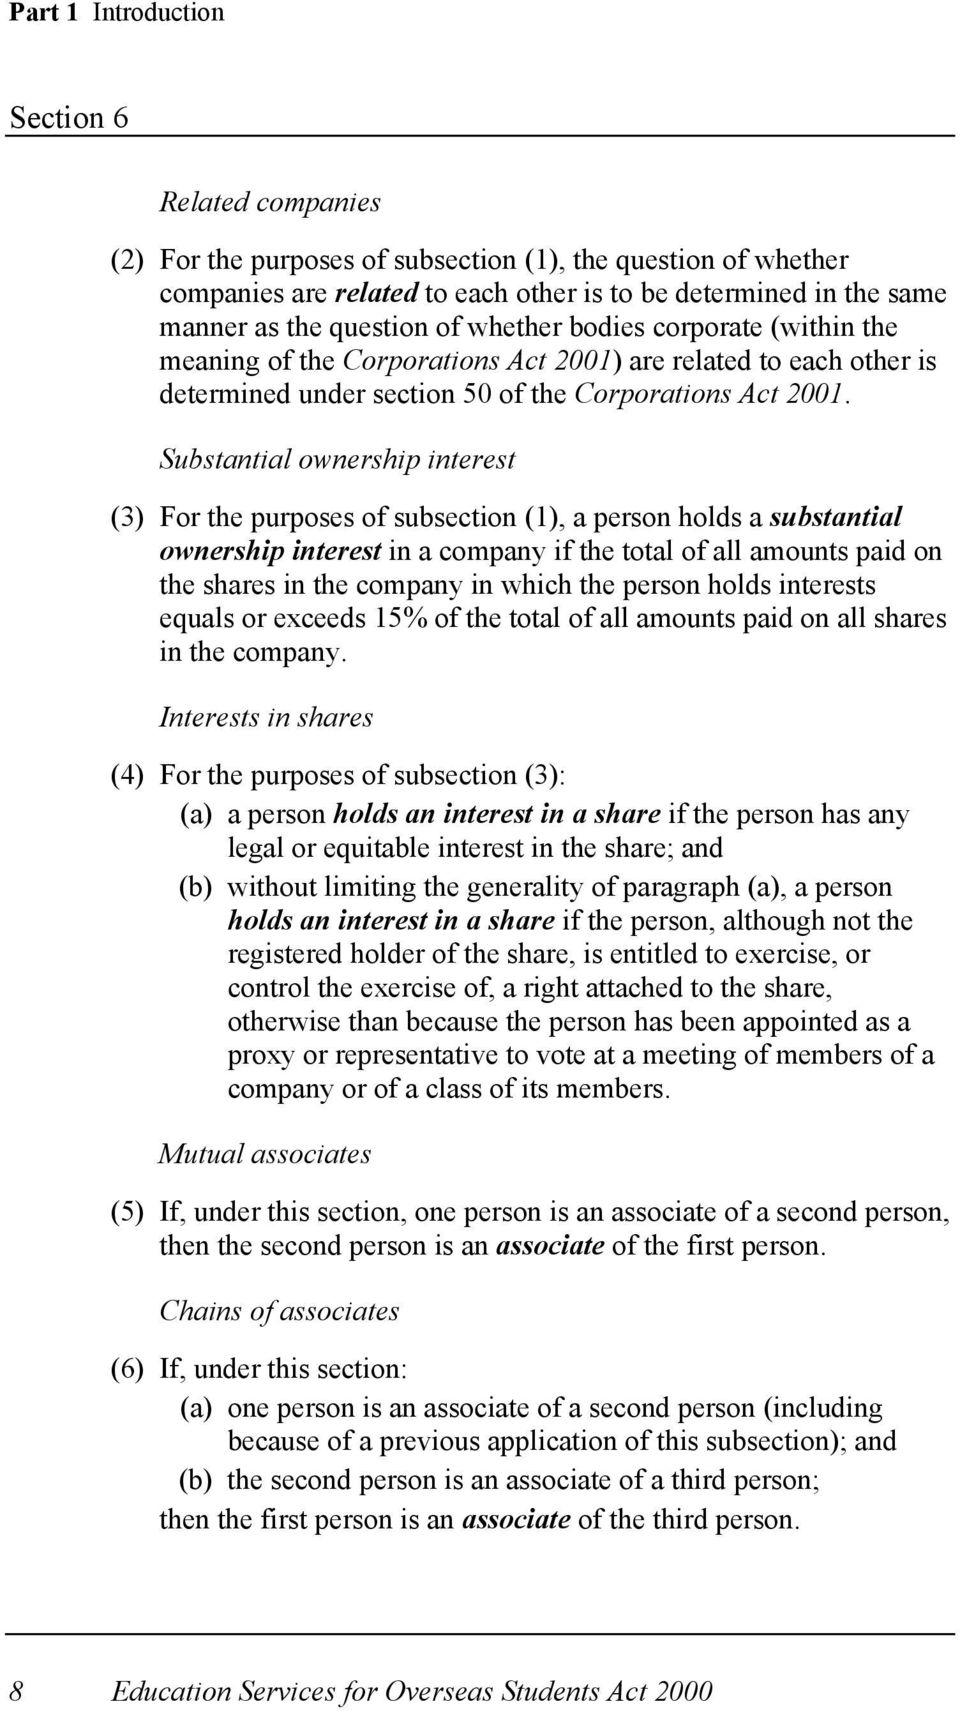 Substantial ownership interest (3) For the purposes of subsection (1), a person holds a substantial ownership interest in a company if the total of all amounts paid on the shares in the company in